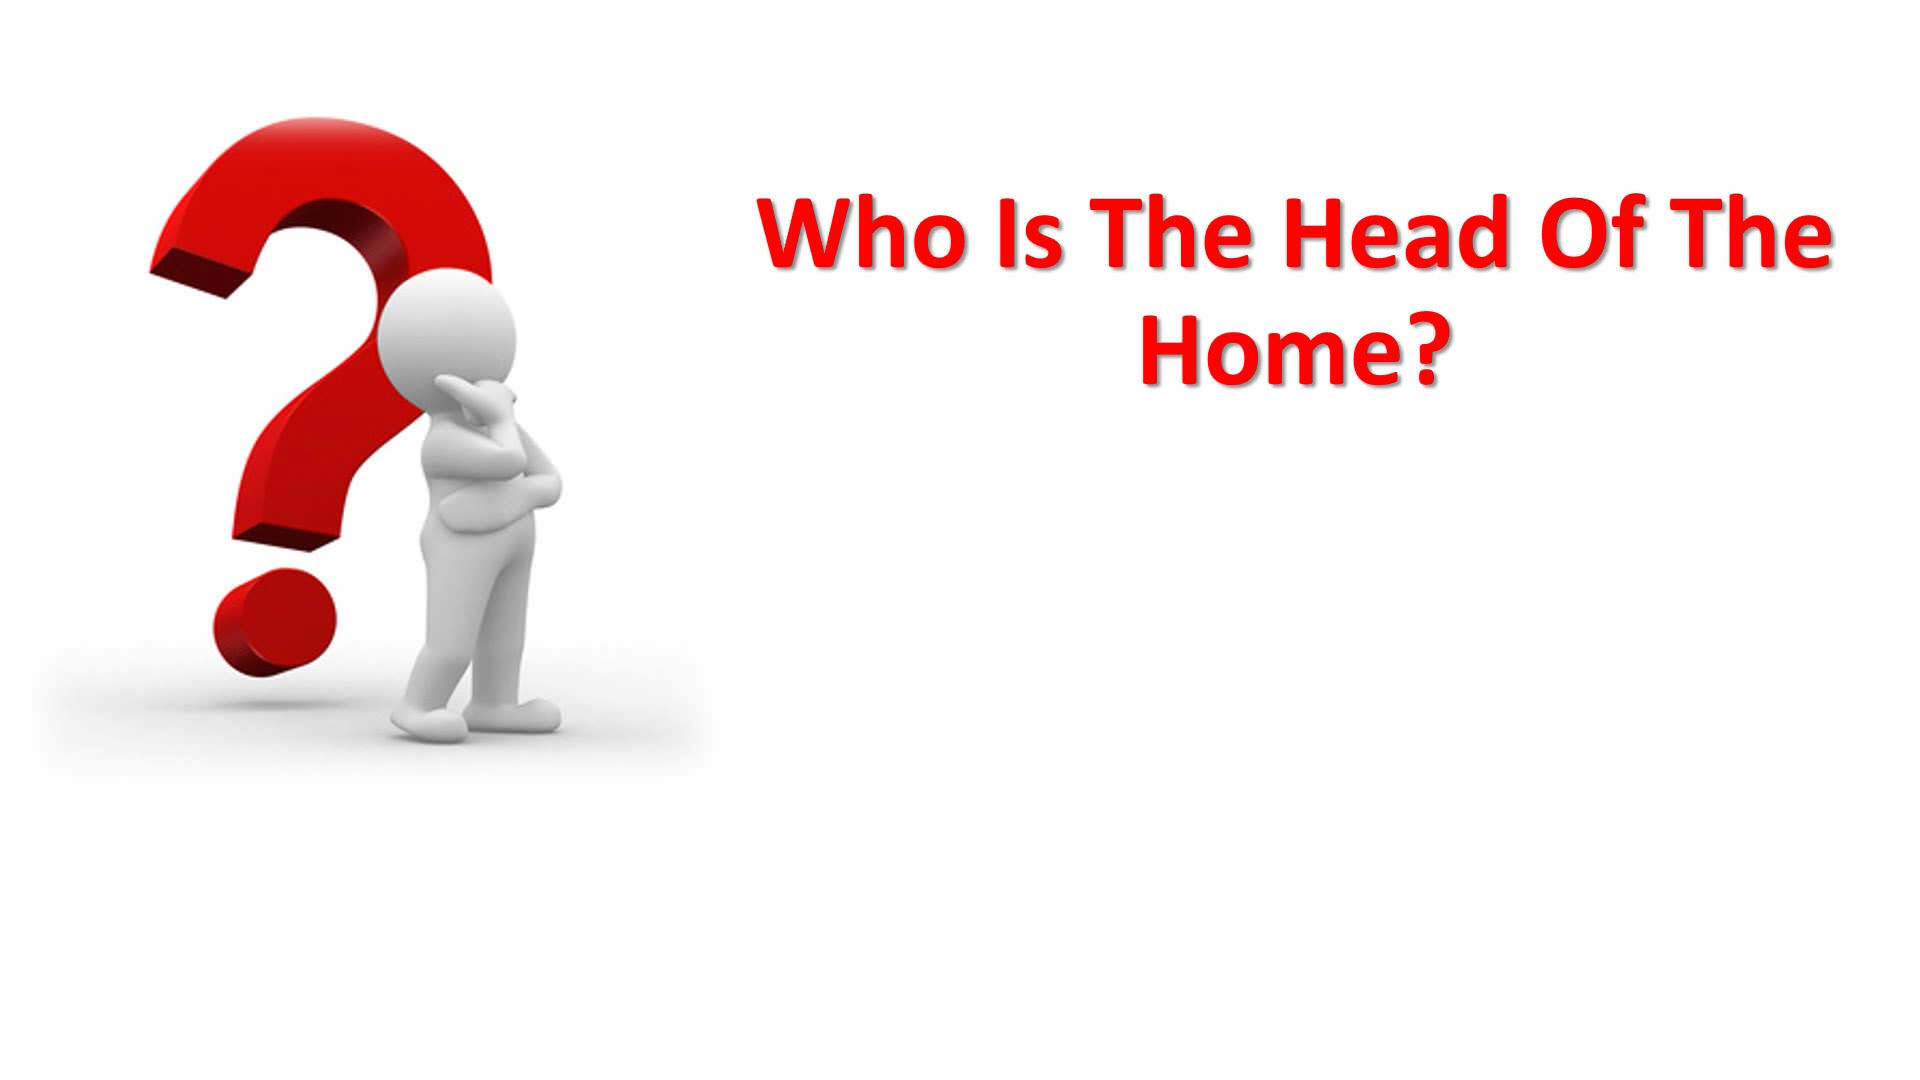 Who Is The Head Of The Home?